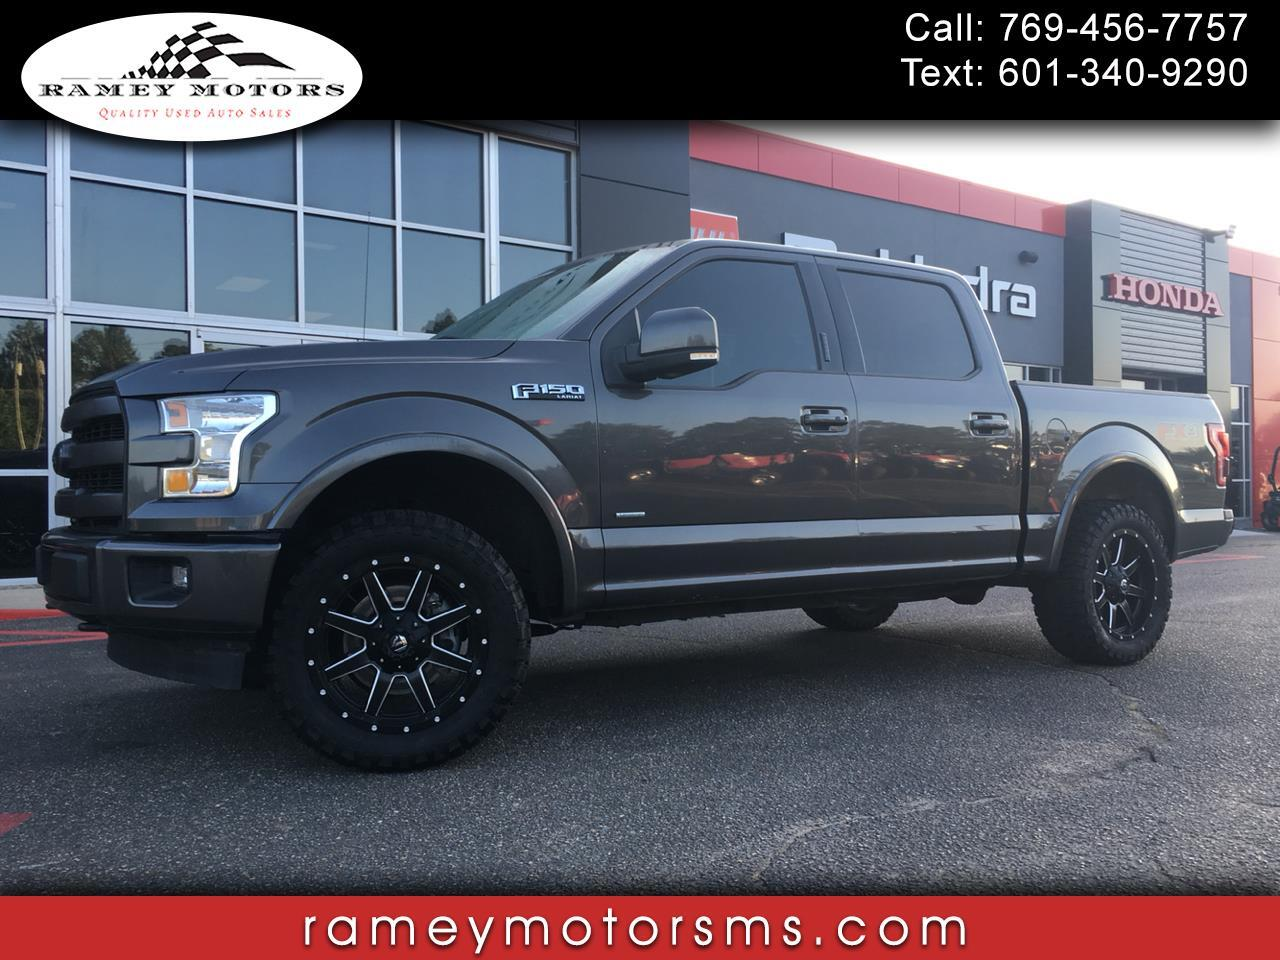 2016 Ford F-150 4WD CREWCAB LARIAT CUSTOM LEVELED